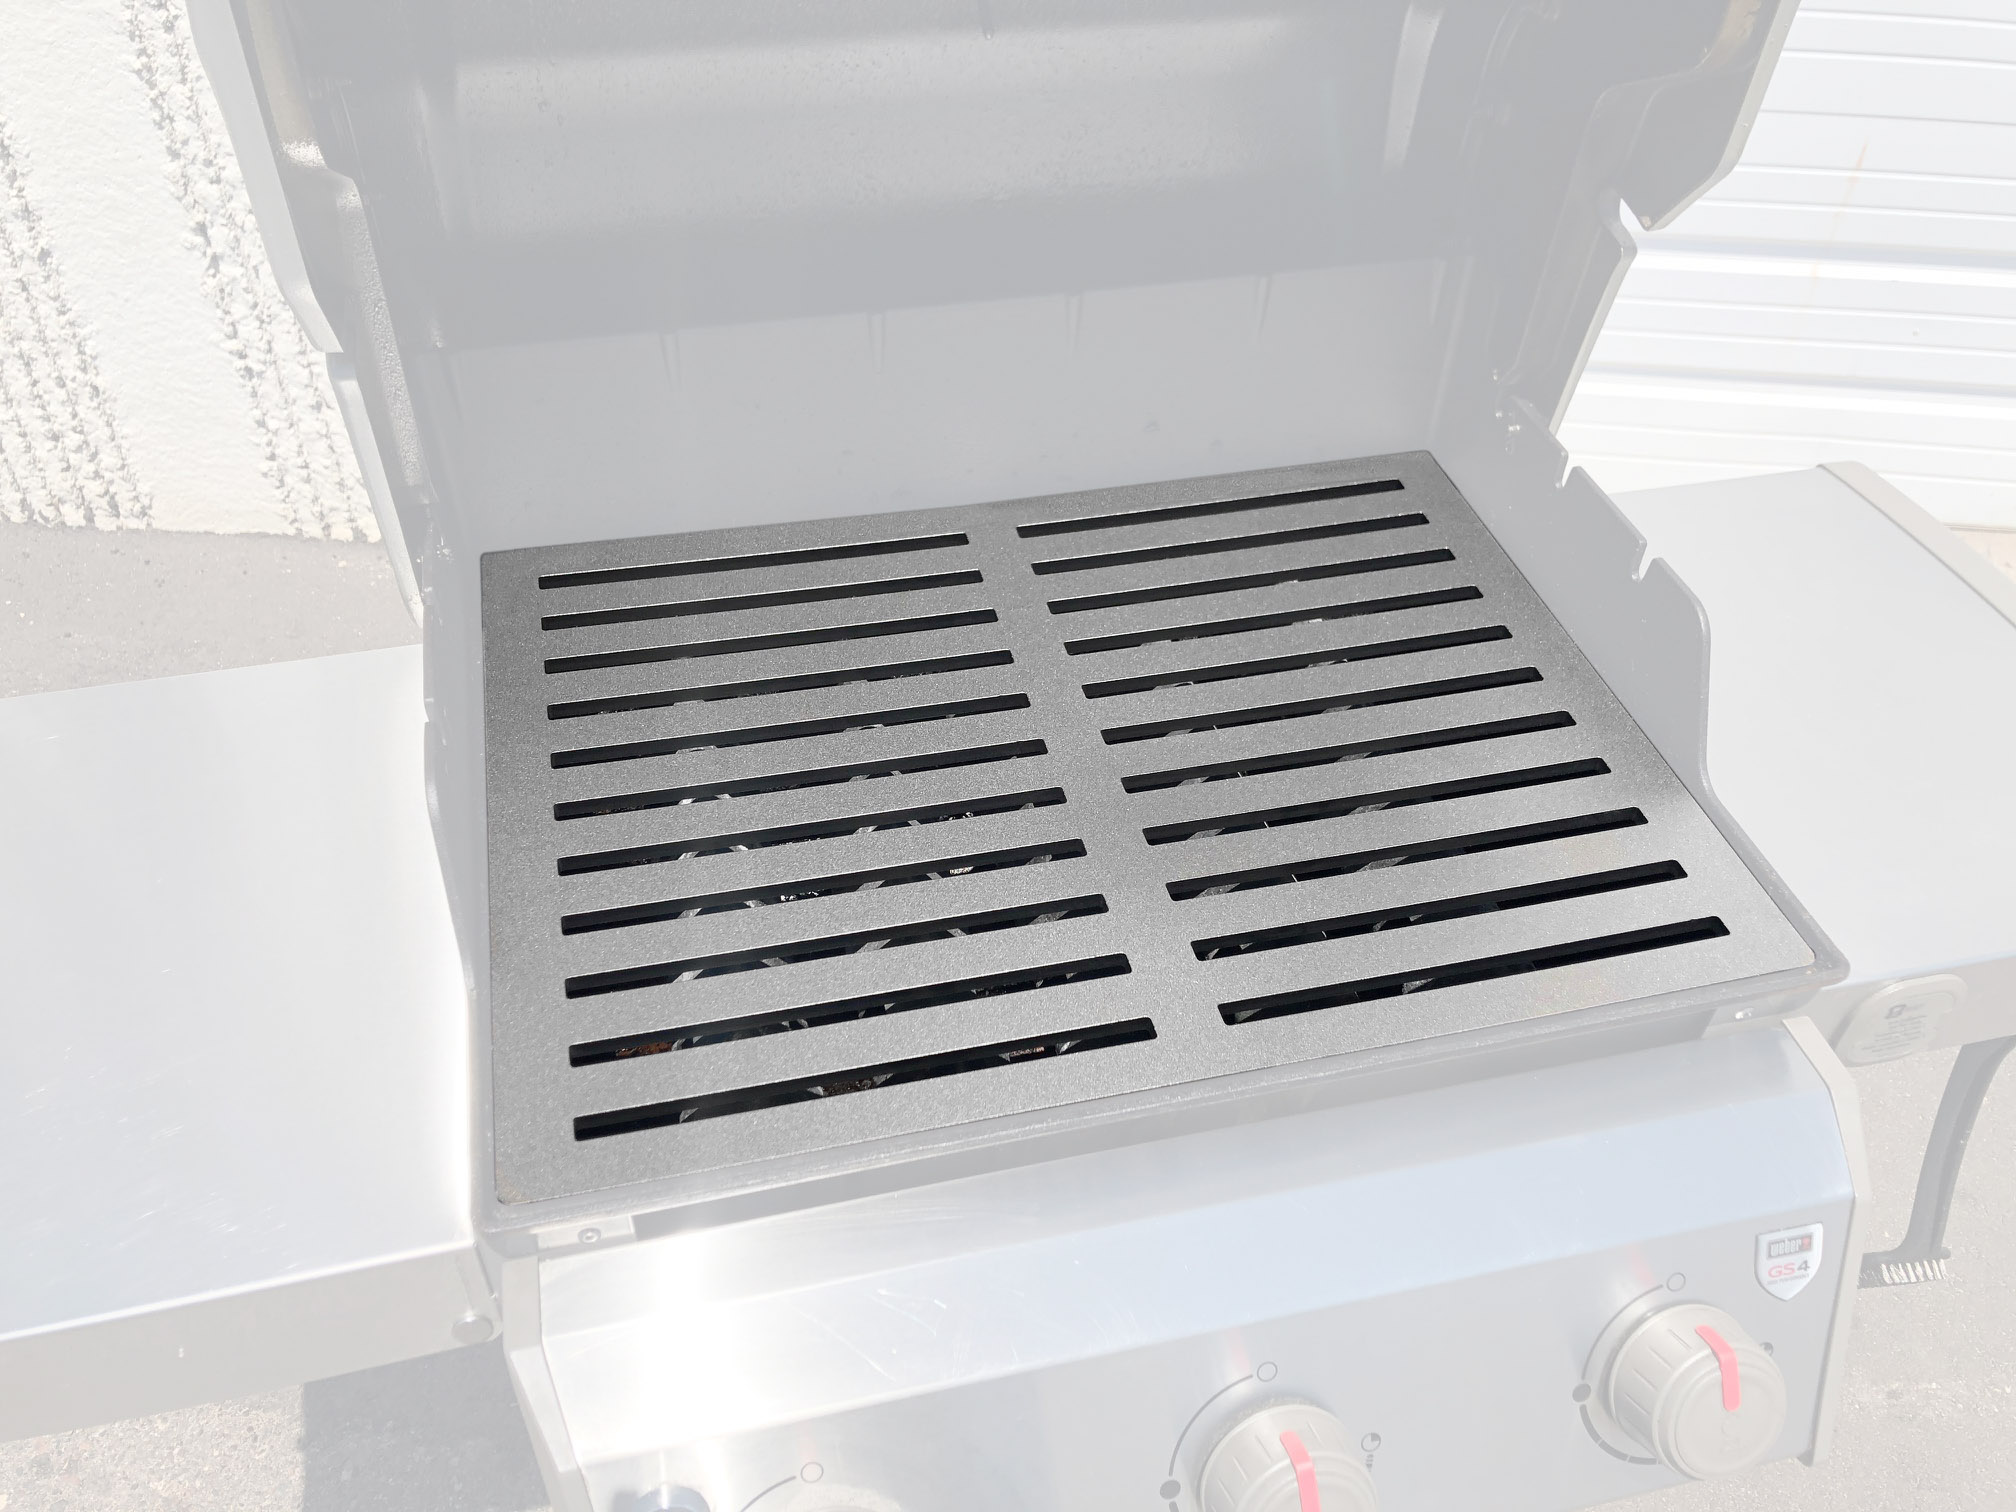 Full Grill Grate - Fits Weber Gas Grills